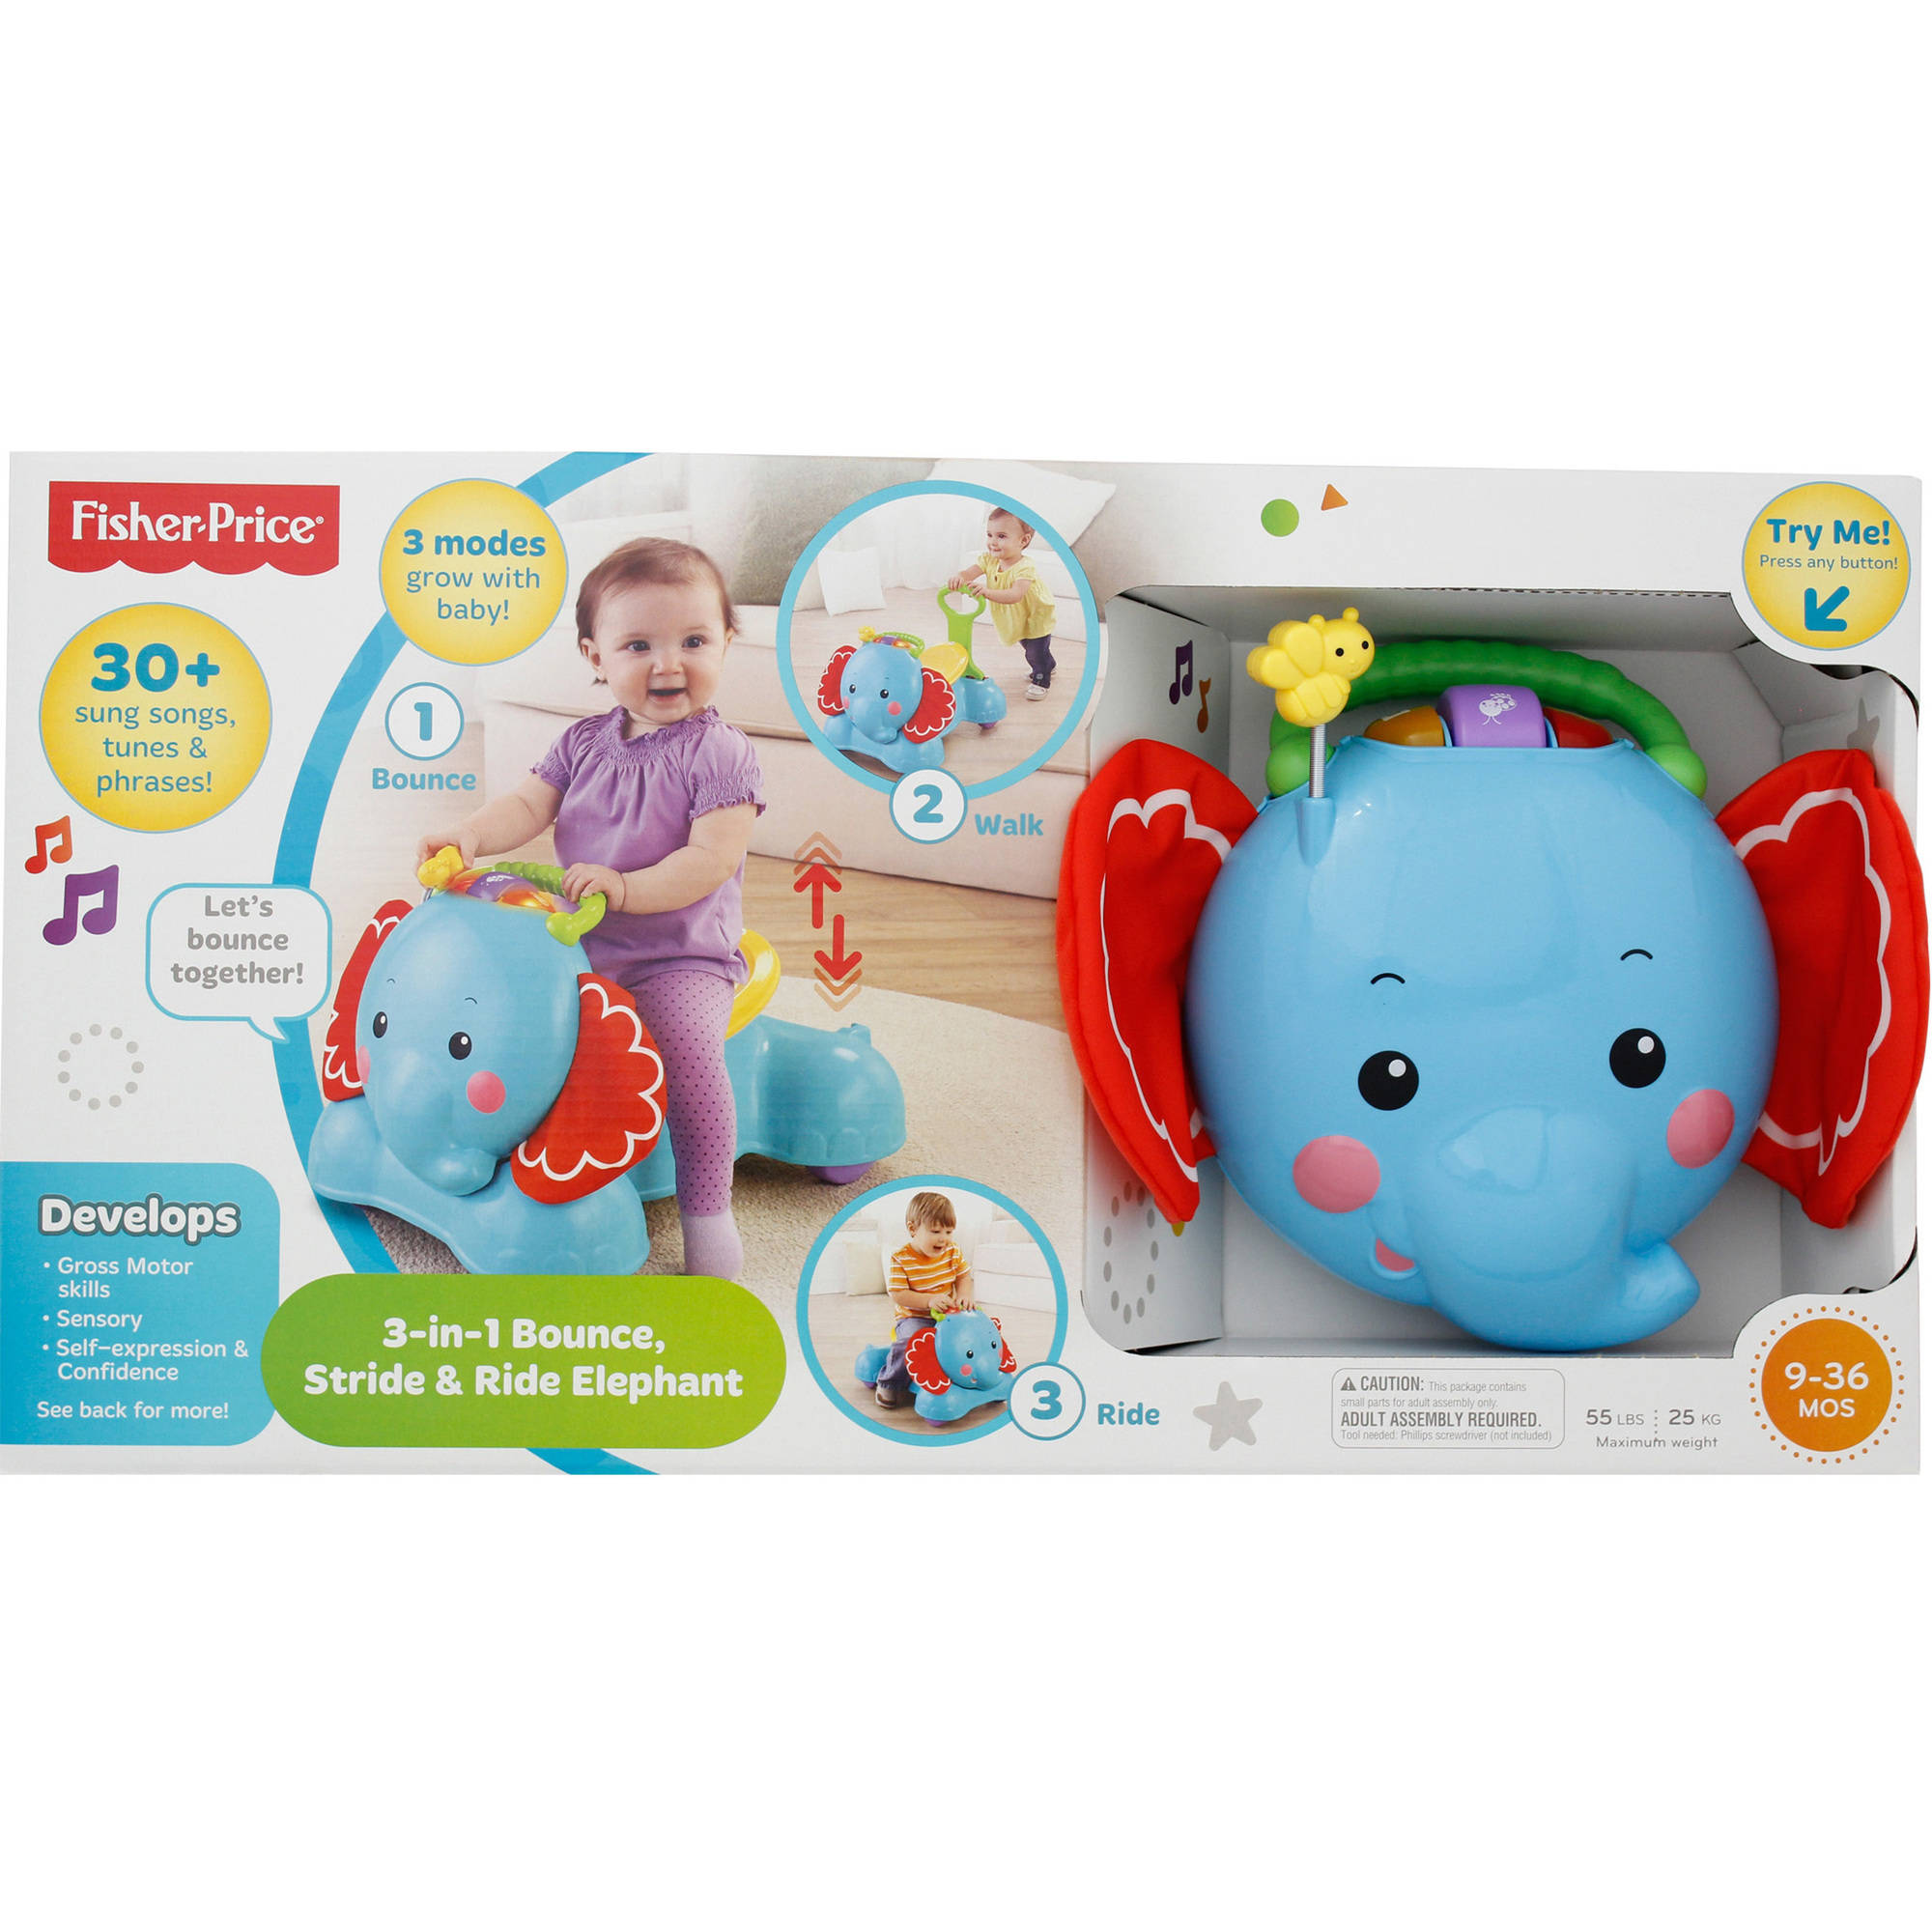 Fisher-Price 3-in-1 Bounce, Stride and Ride Elephant Walker / Ride-on